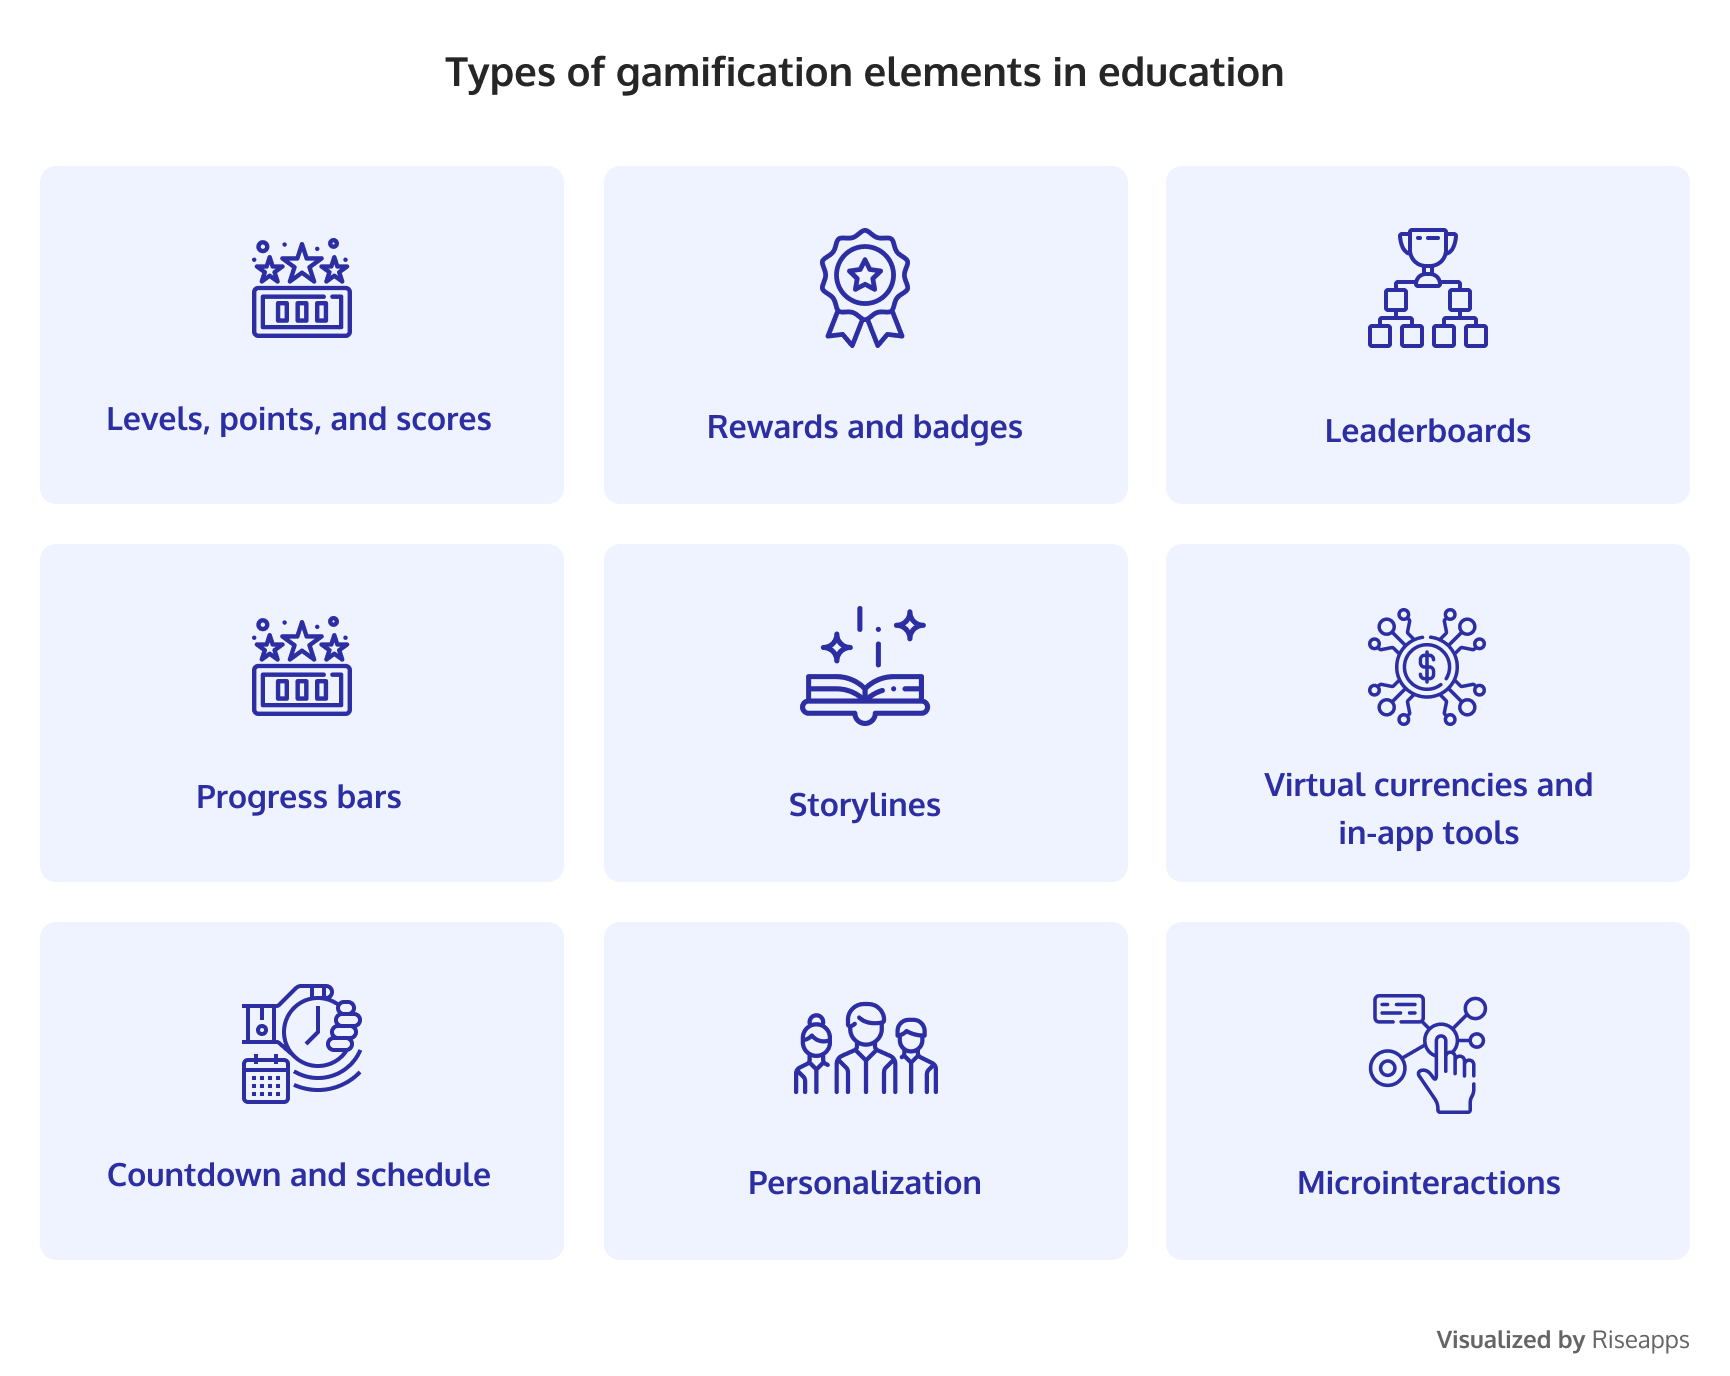 Types of gamification elements in education